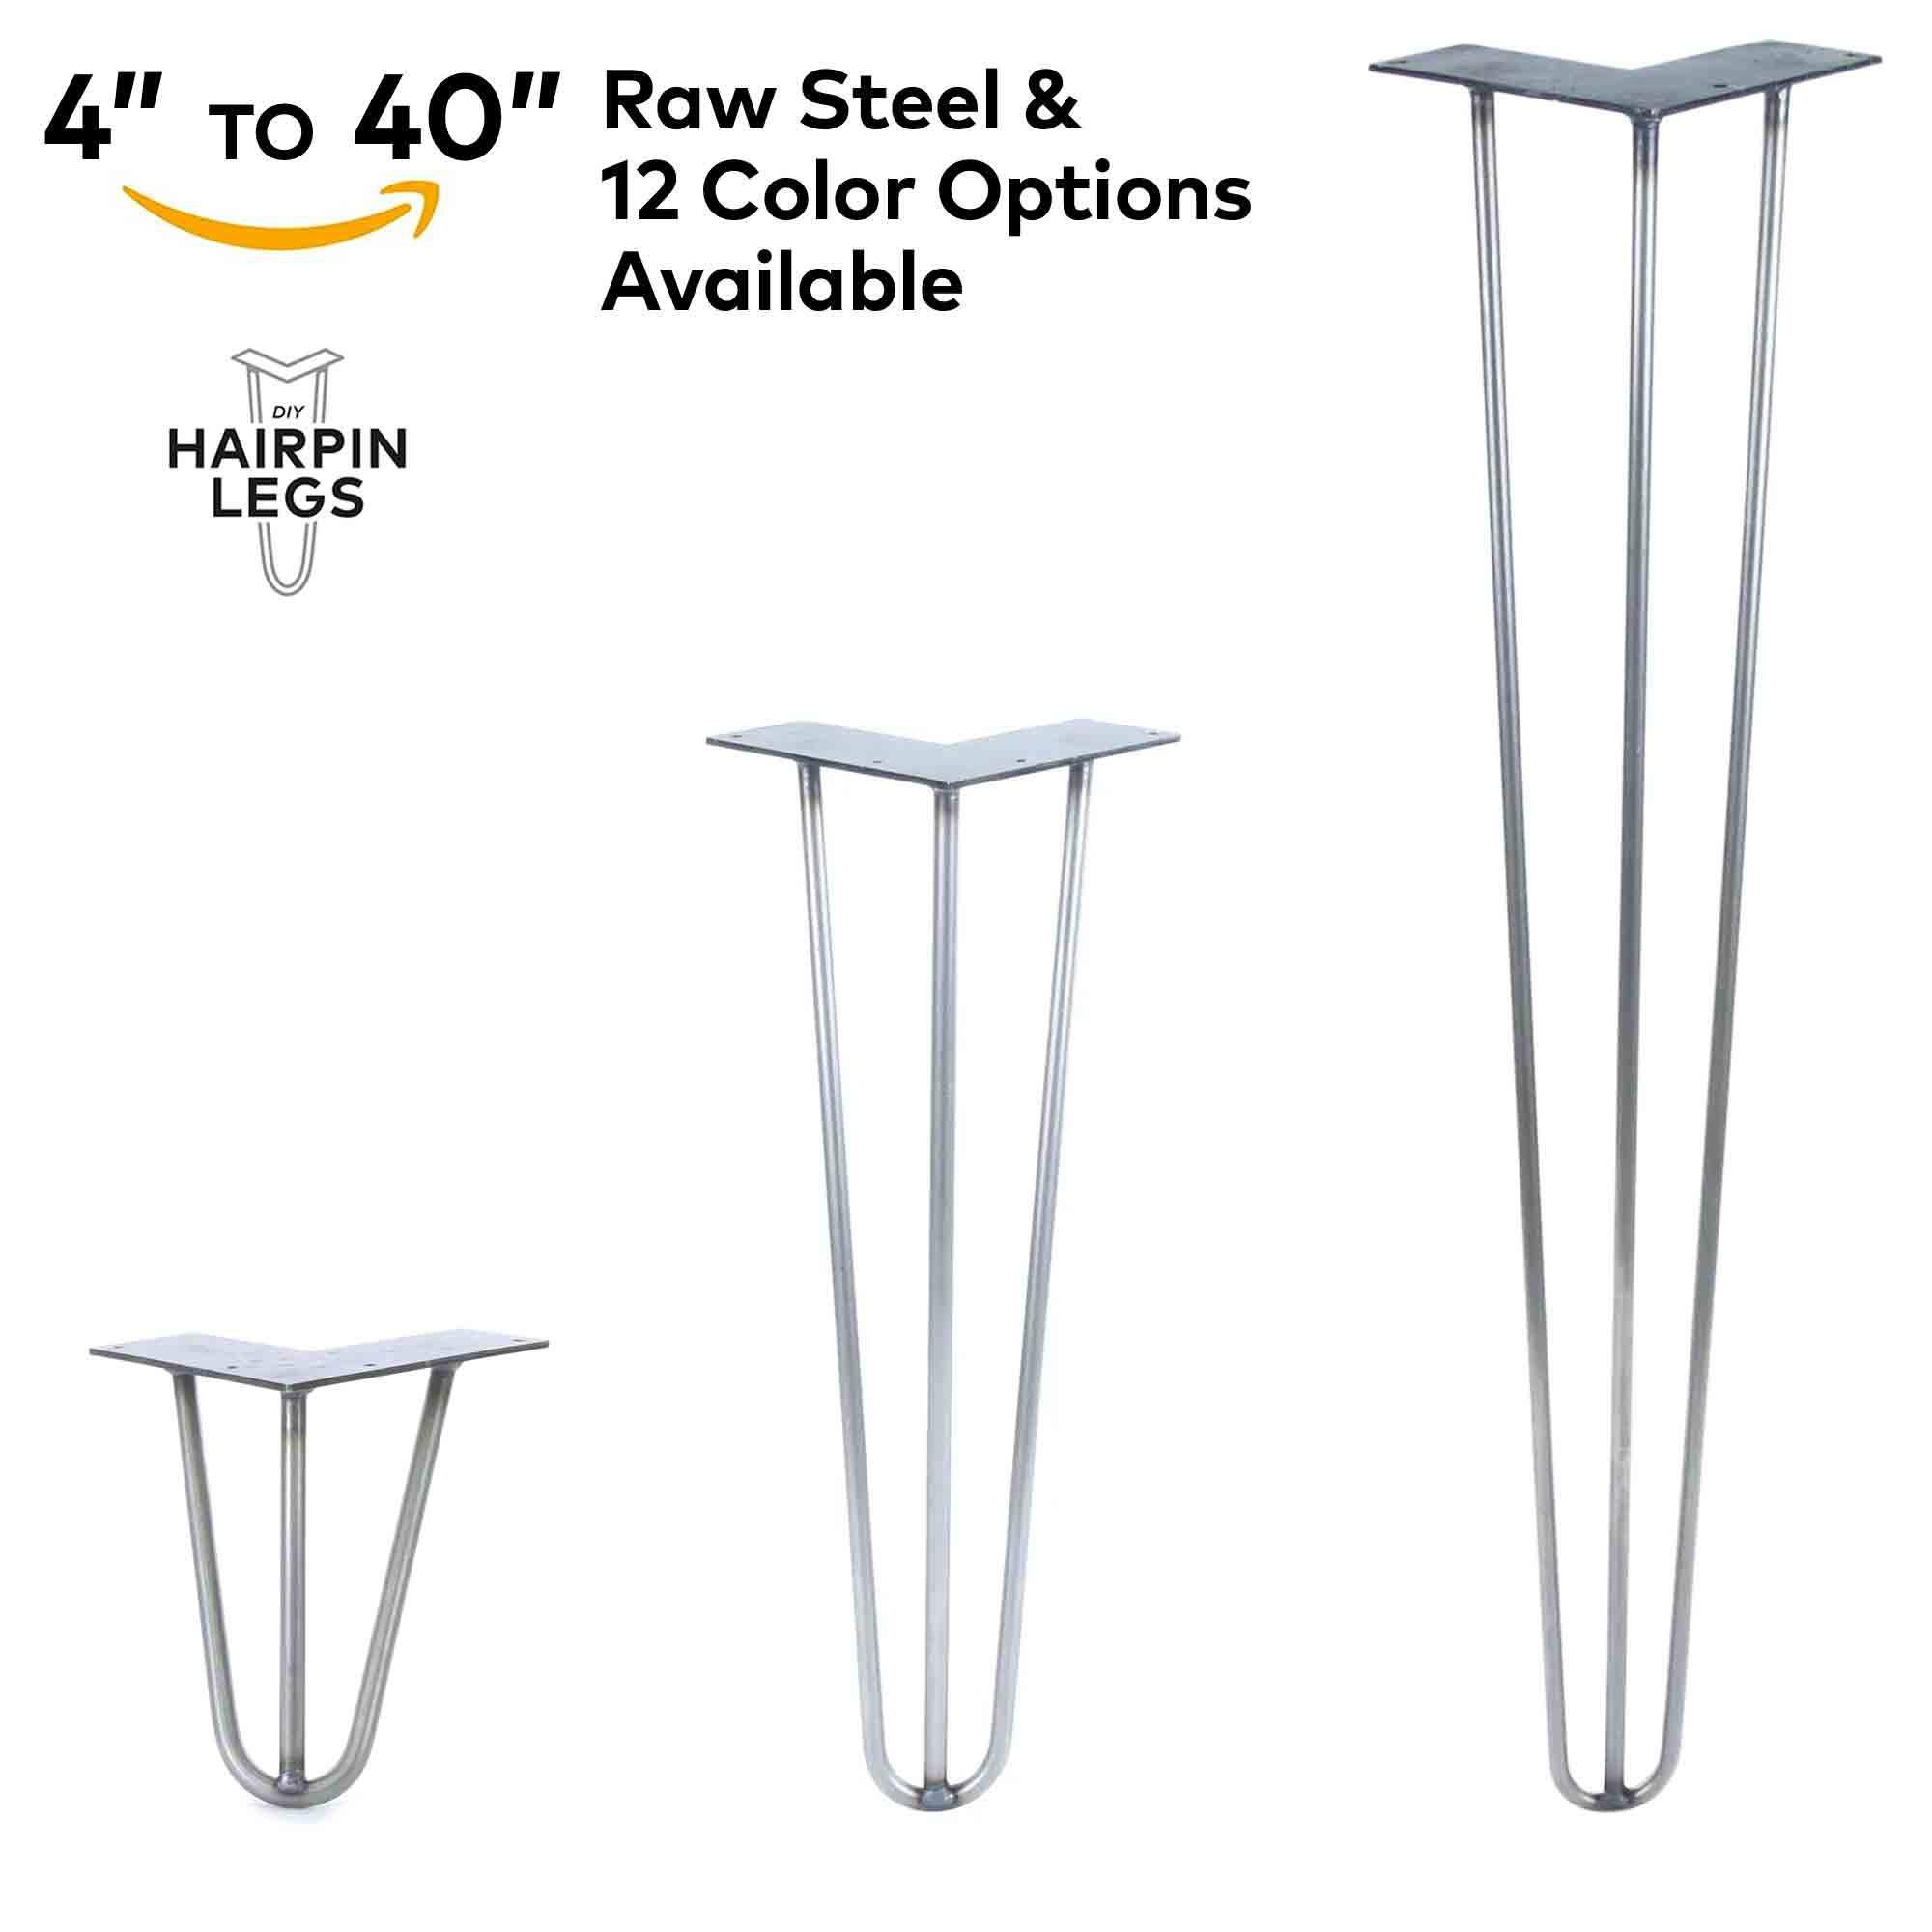 """4'' - 40'' Hairpin Legs - 3Rod Design - Raw Steel - 3/8'' Diameter - MADE in the USA (16"""" Height x 3/8'' Diameter - Each Leg Sold Separately)"""